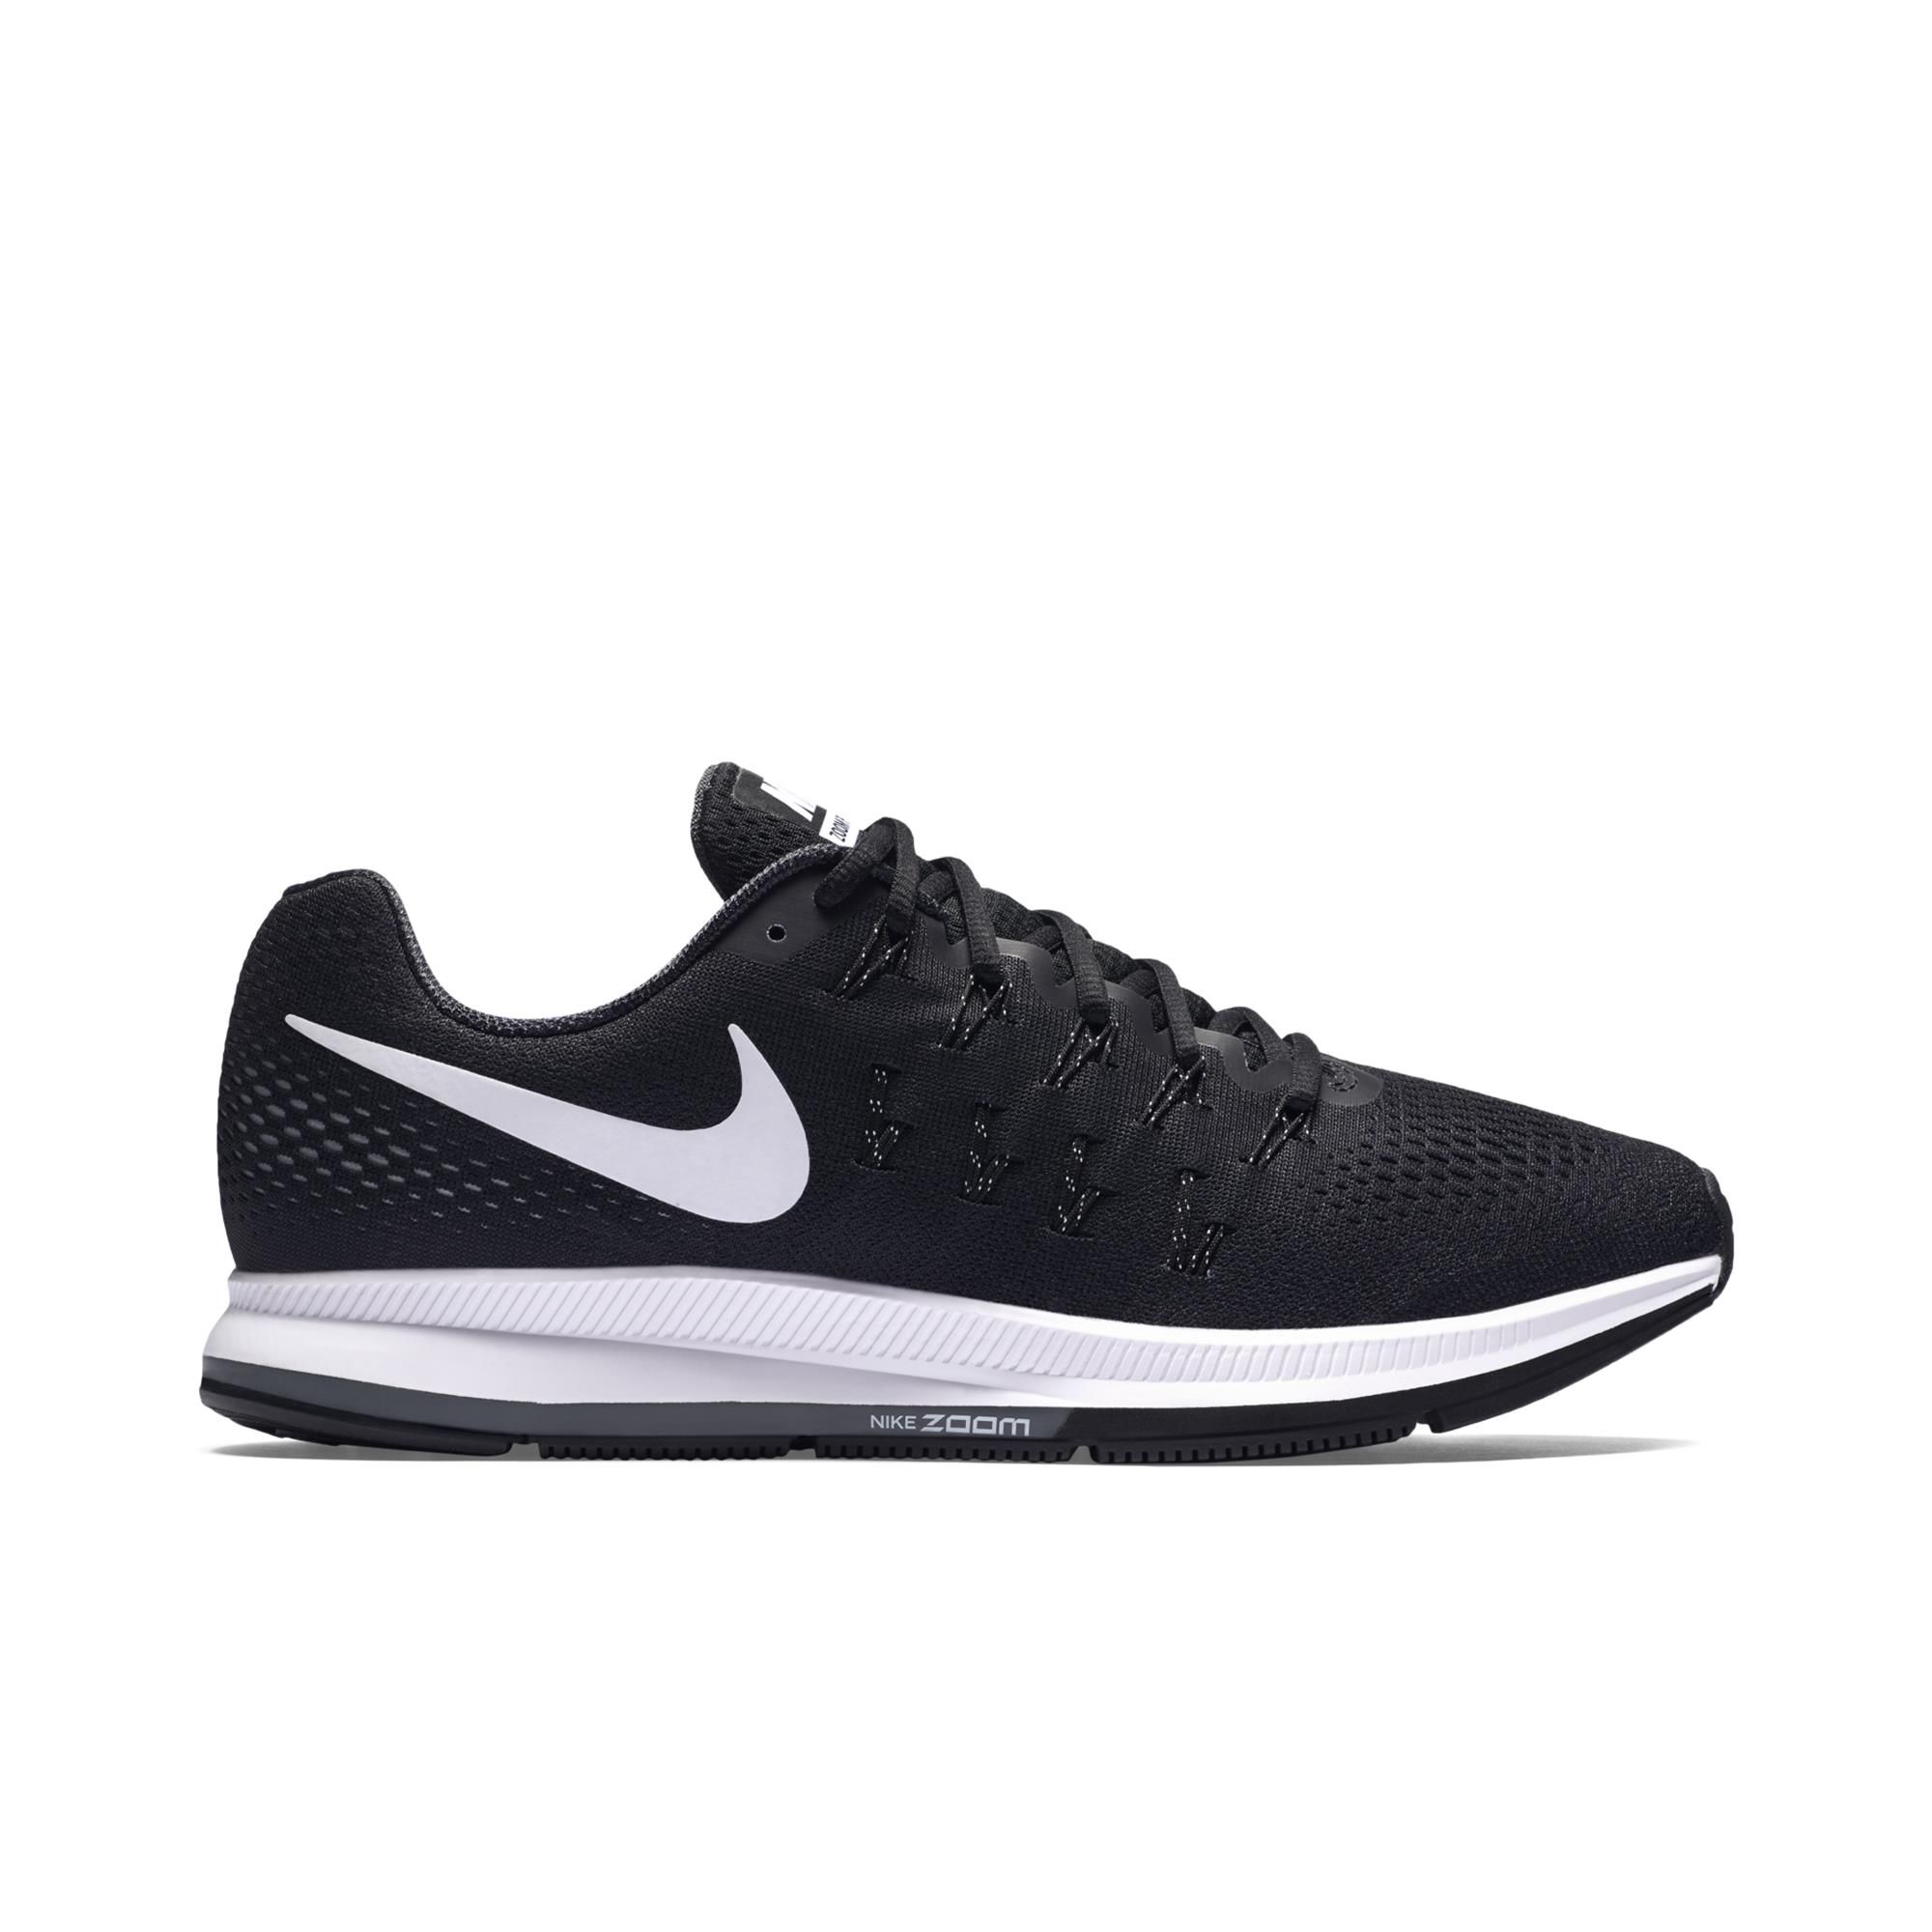 23a3927b45 Tênis Nike Air Zoom Pegasus 33 Masculino | Shoes/apparel | Tênis ...